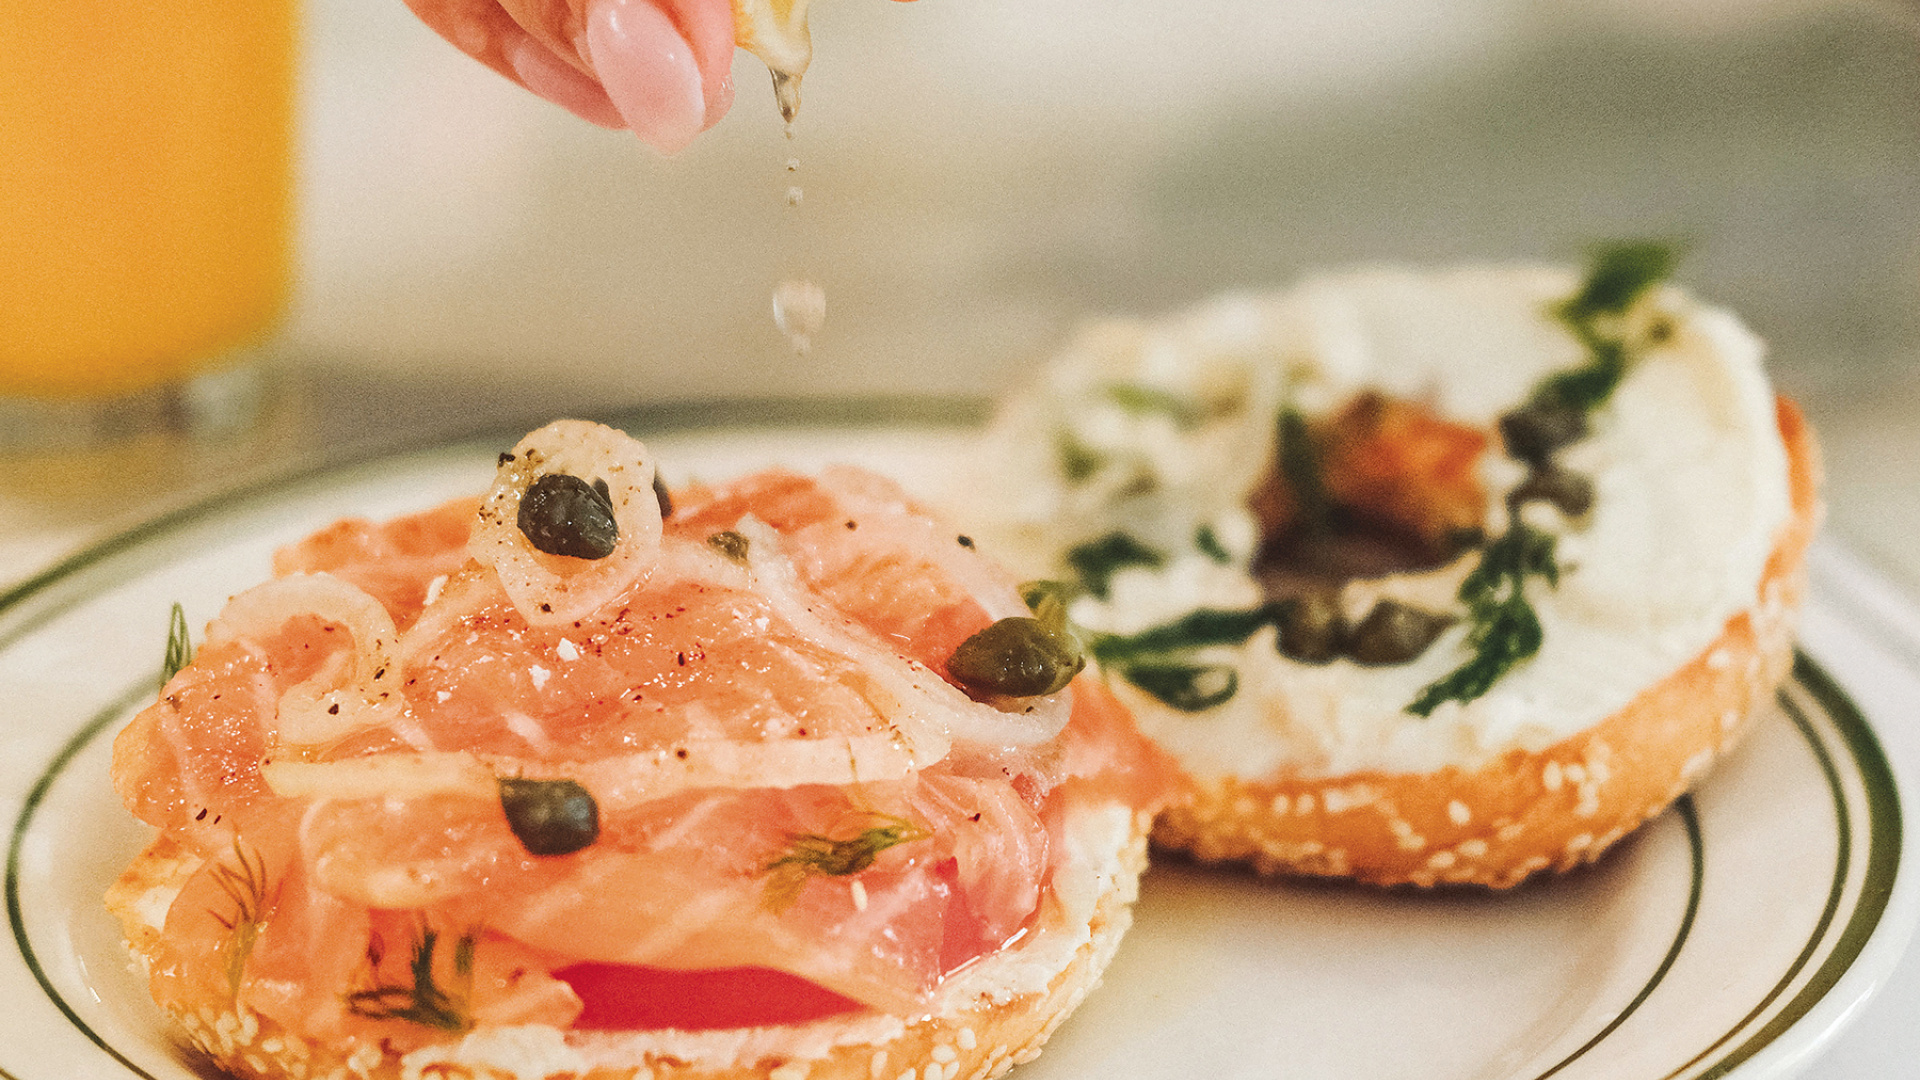 Montreal bagels | A bagel topped with cream cheese and salmon lox